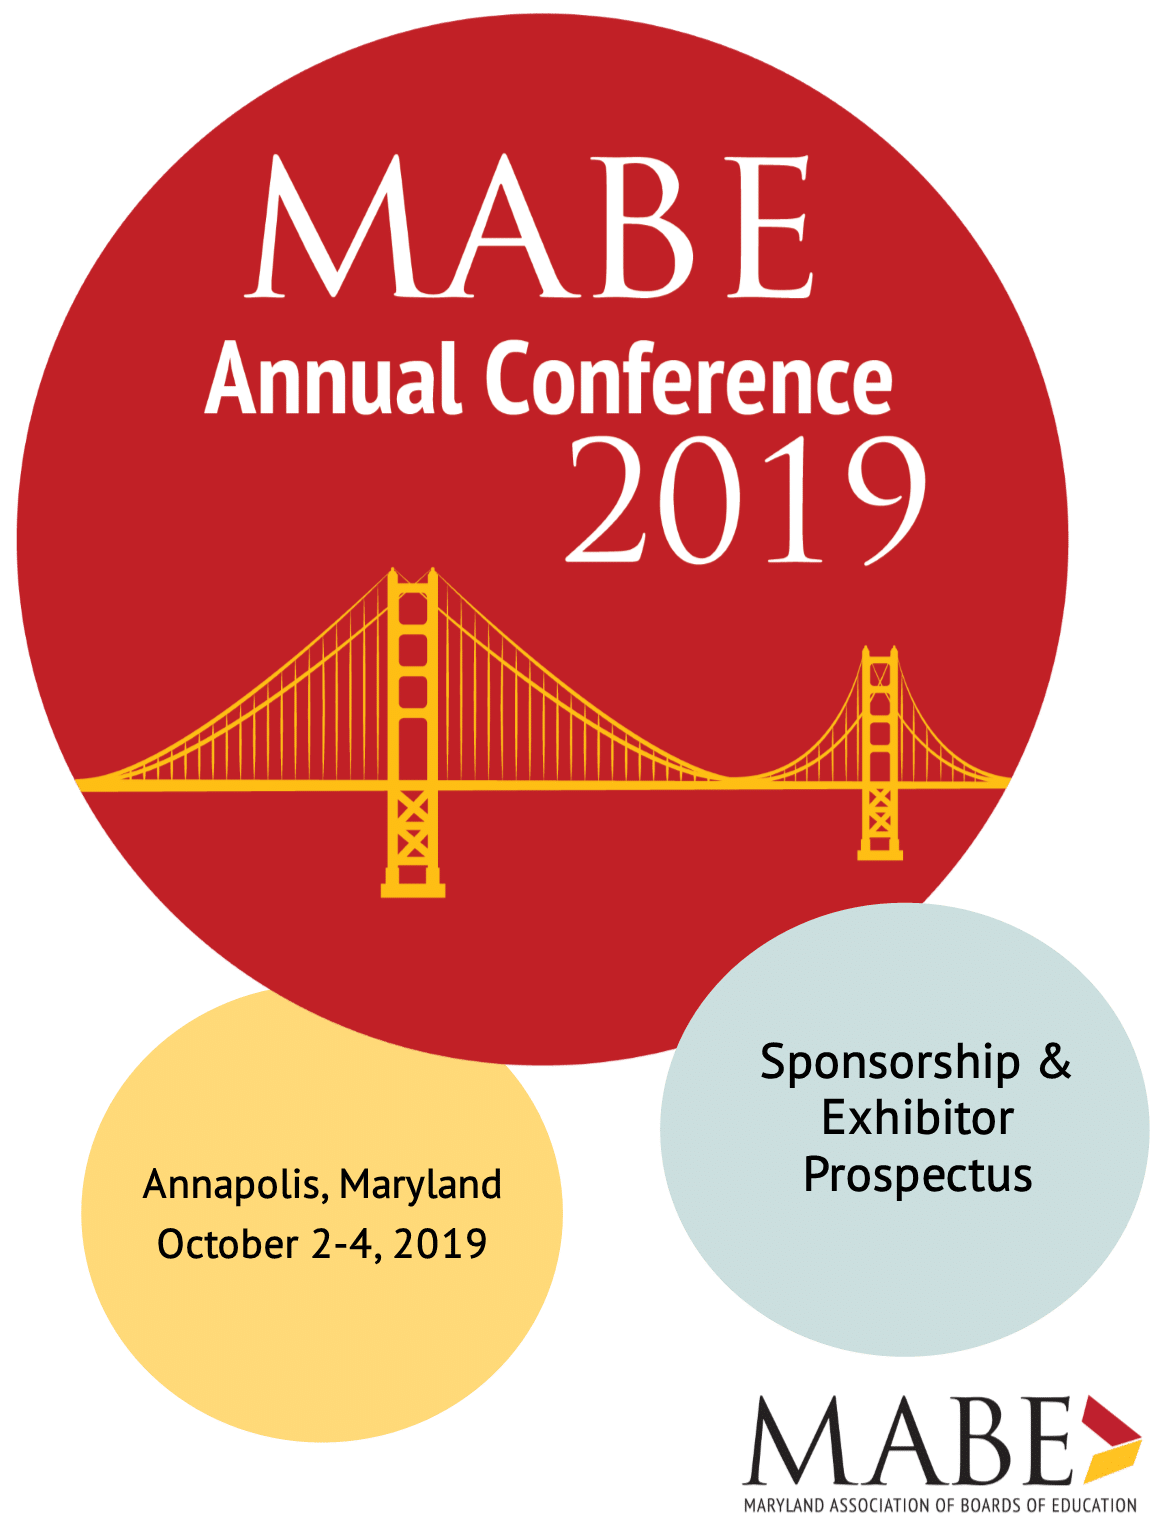 MABE Annual Conference 2019 Logo